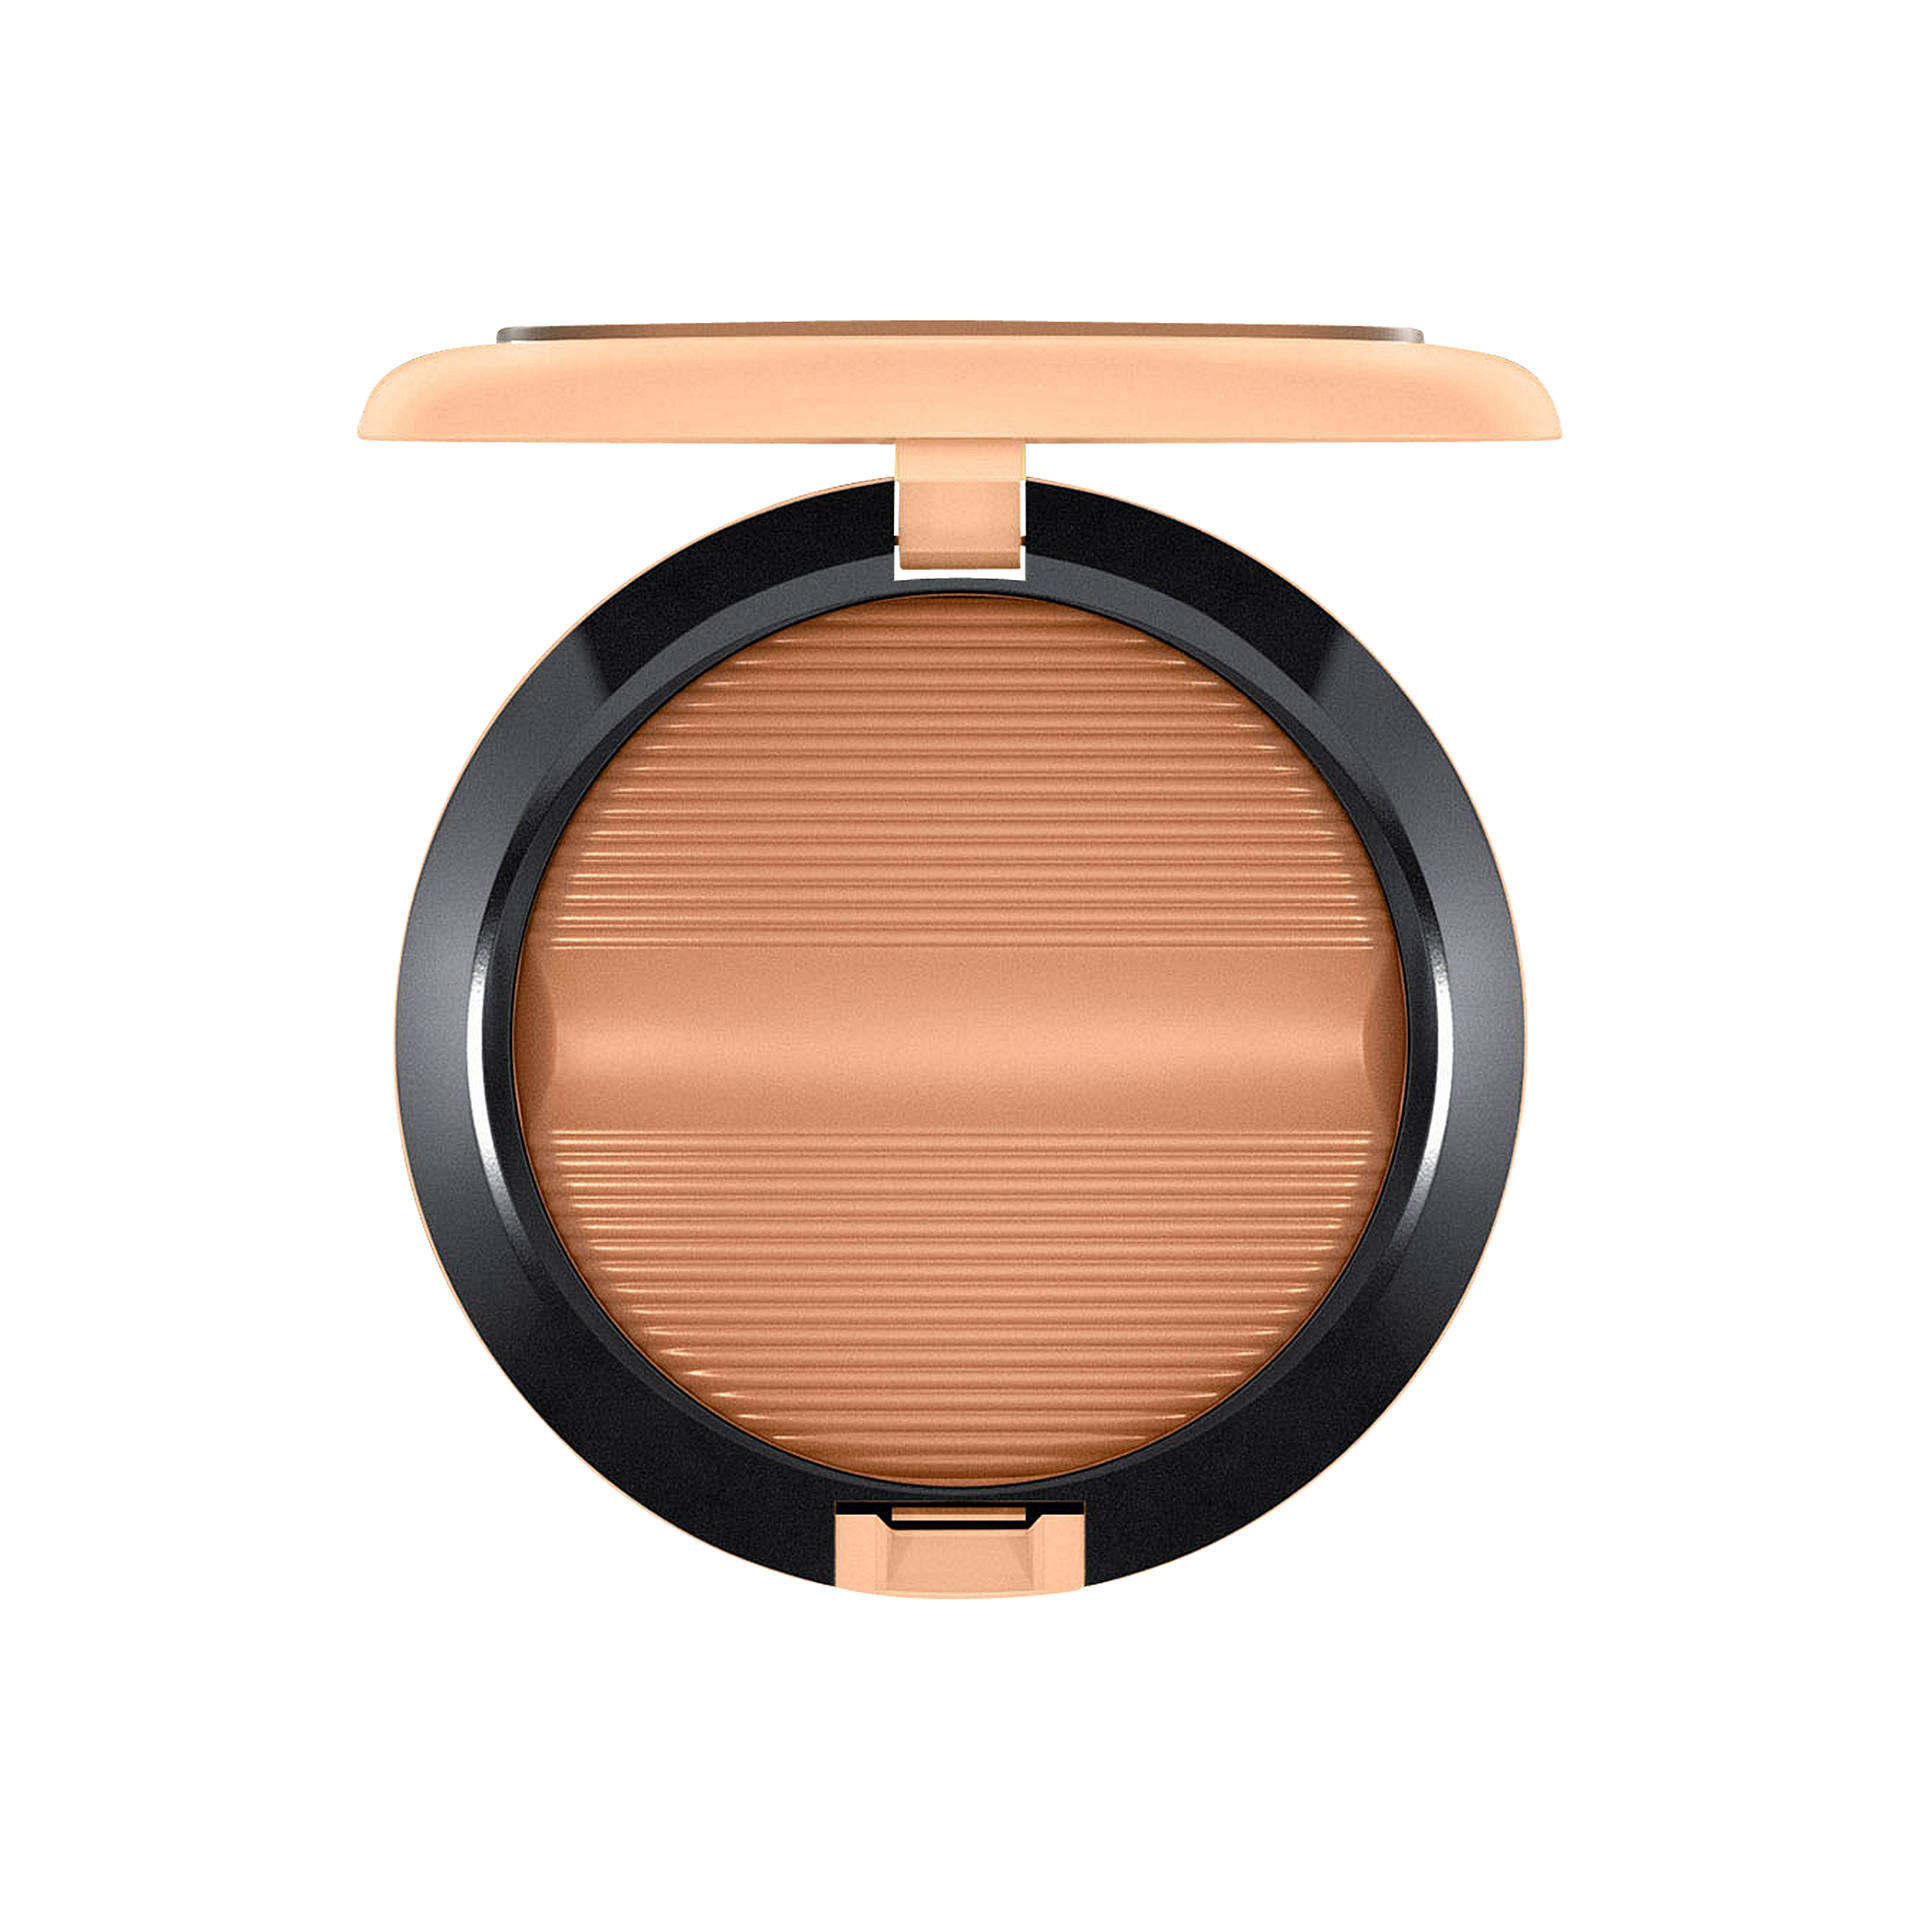 MAC Vibe Tribe Studio Sculpt Defining Bronzing Powder Delphic